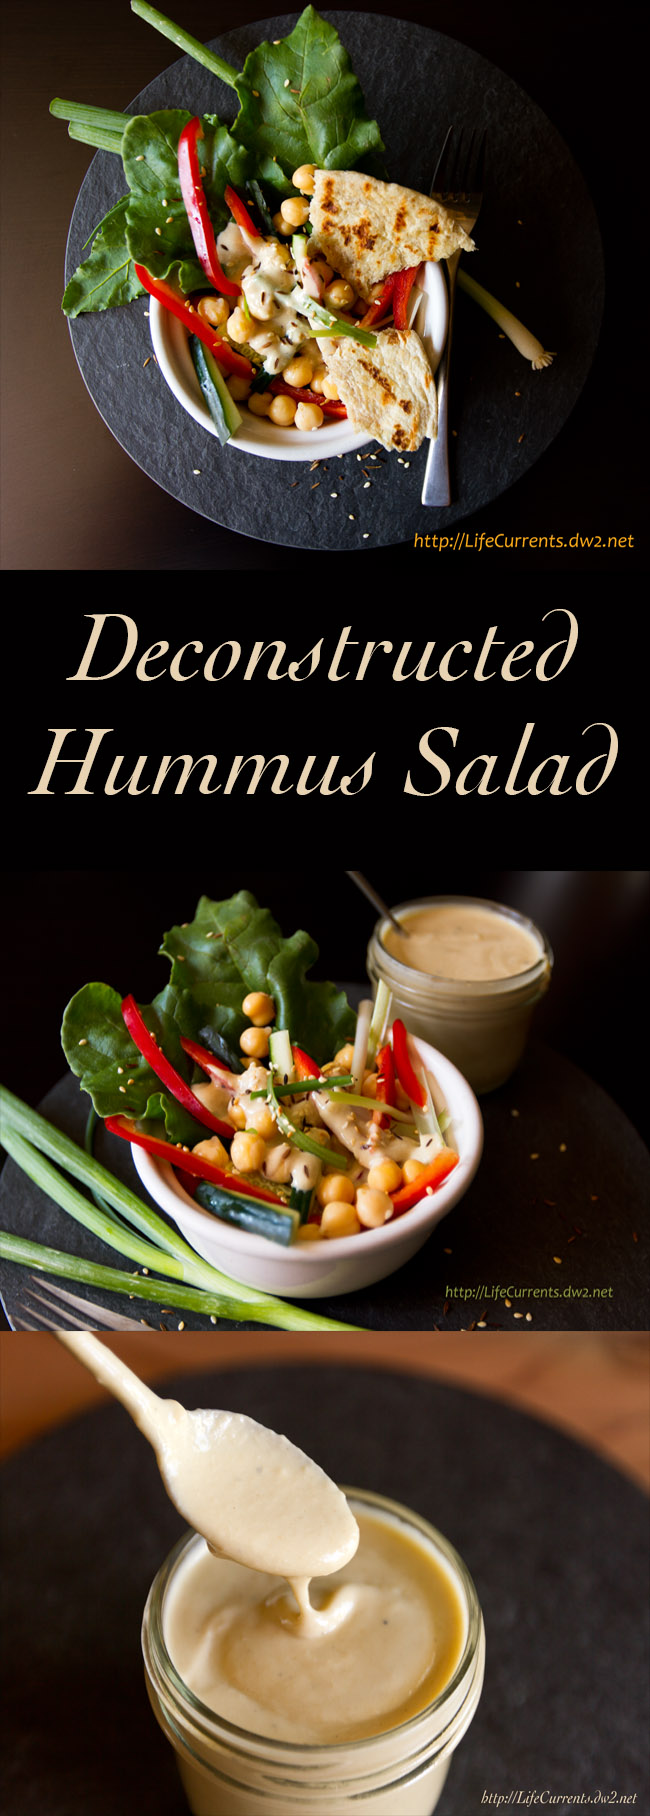 Deconstructed Hummus Salad with Toasted Flatbread Croutons and Tahini Dressing Life Currents #salad #hummus #tahini